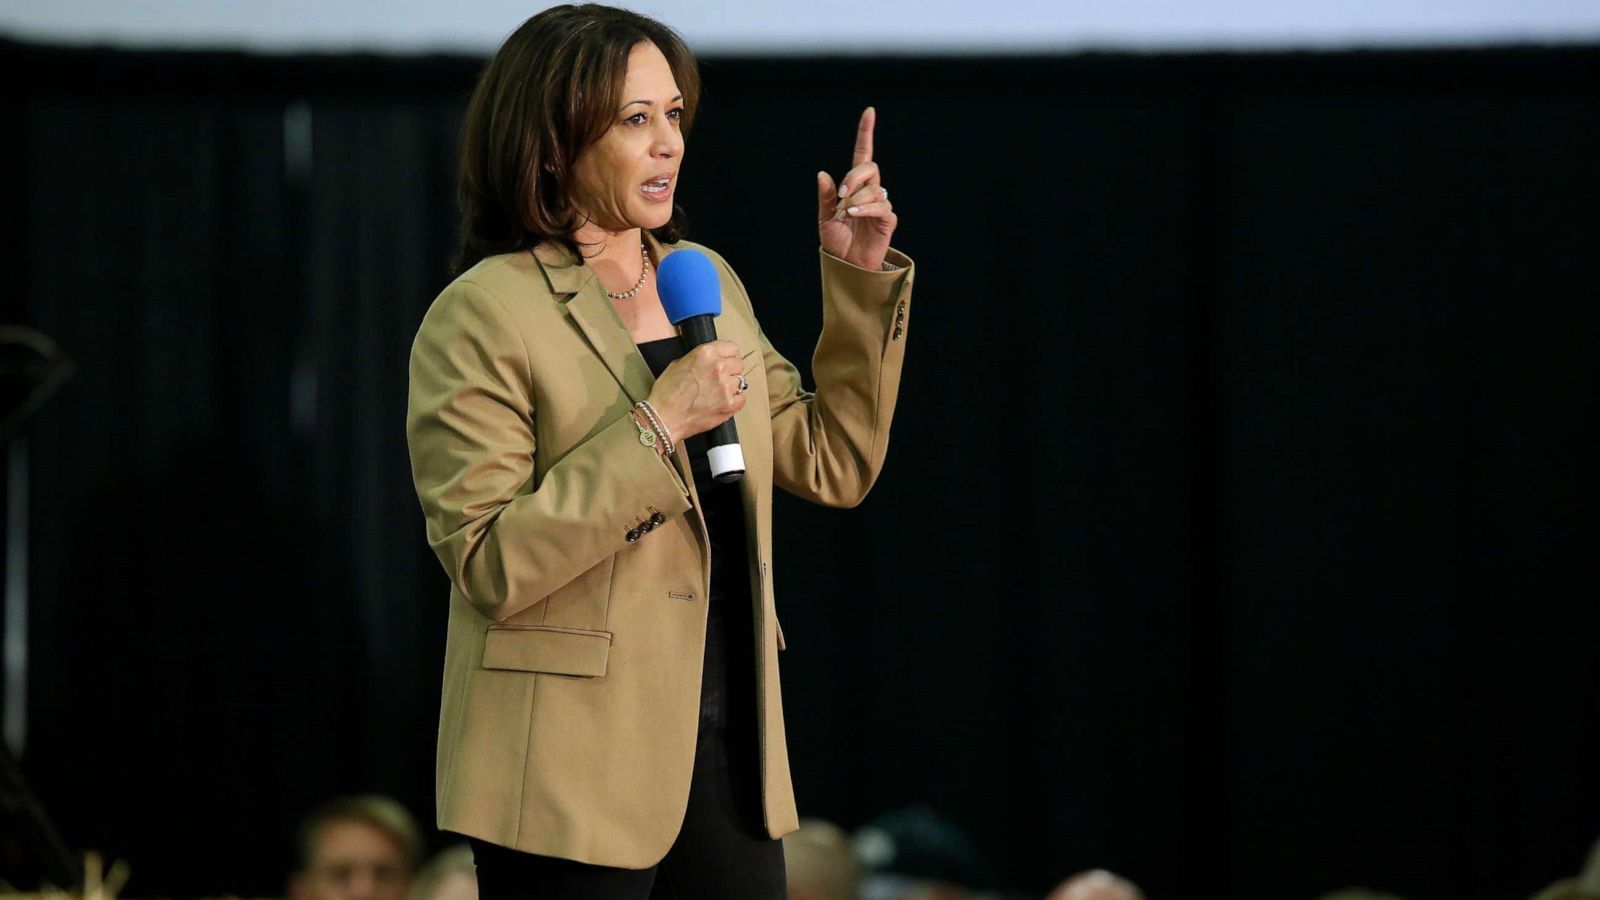 Sen Kamala Harris Friends On Her Upbringing She Was One To Not Let Anyone Tell Her Who She Was Abc News